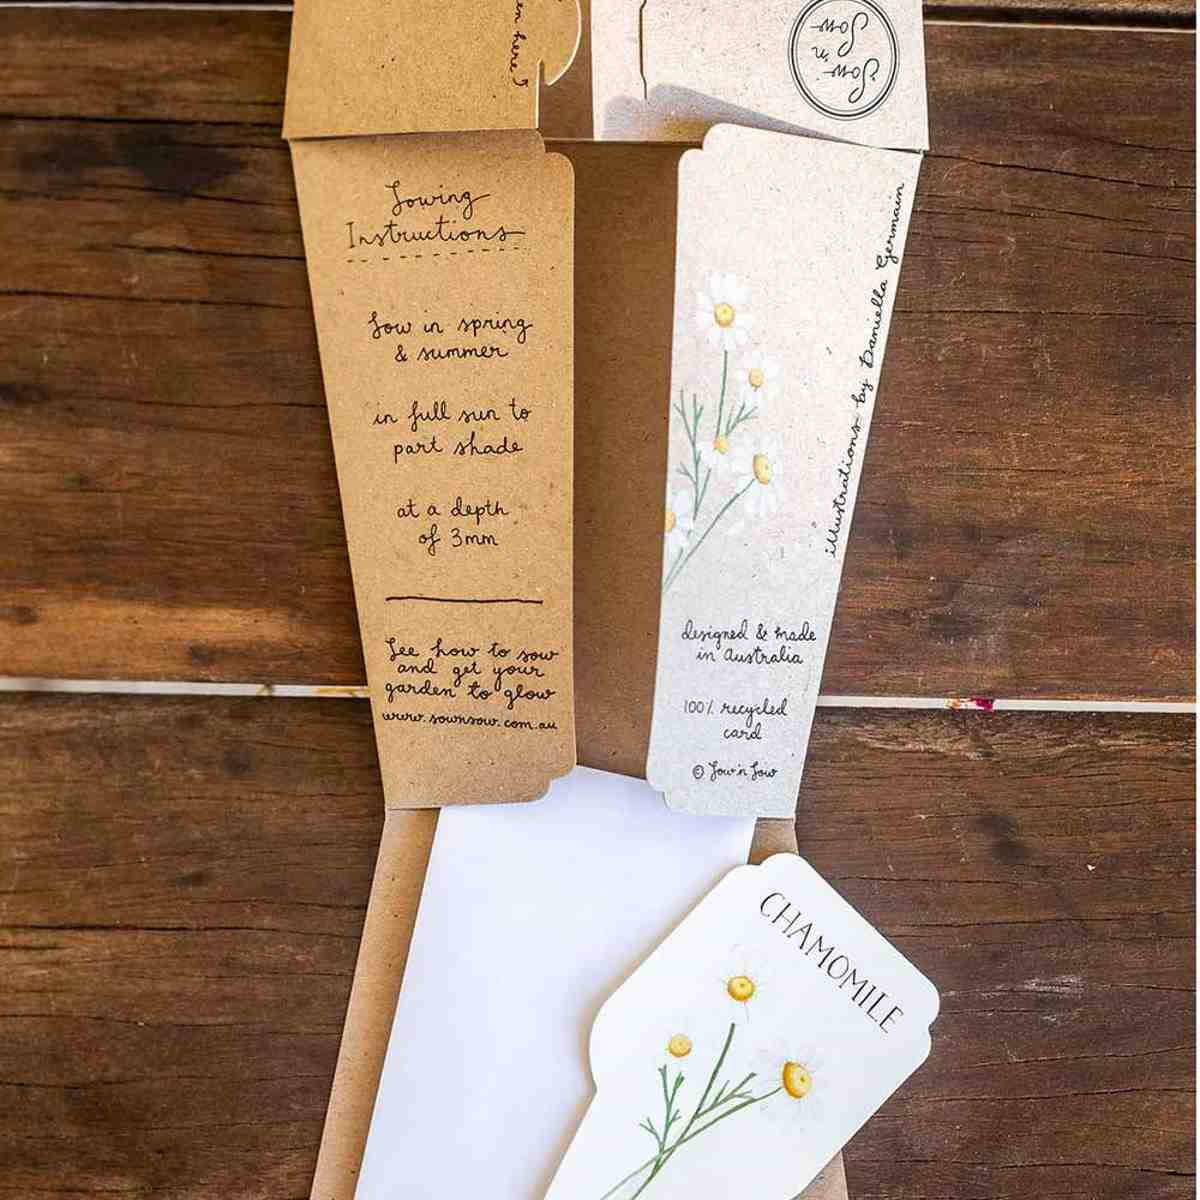 Sow 'n Sow Gift Card with Seeds - Chamomile - Gift of Seeds - Throw Some Seeds - Australian gardening gifts and eco products online!